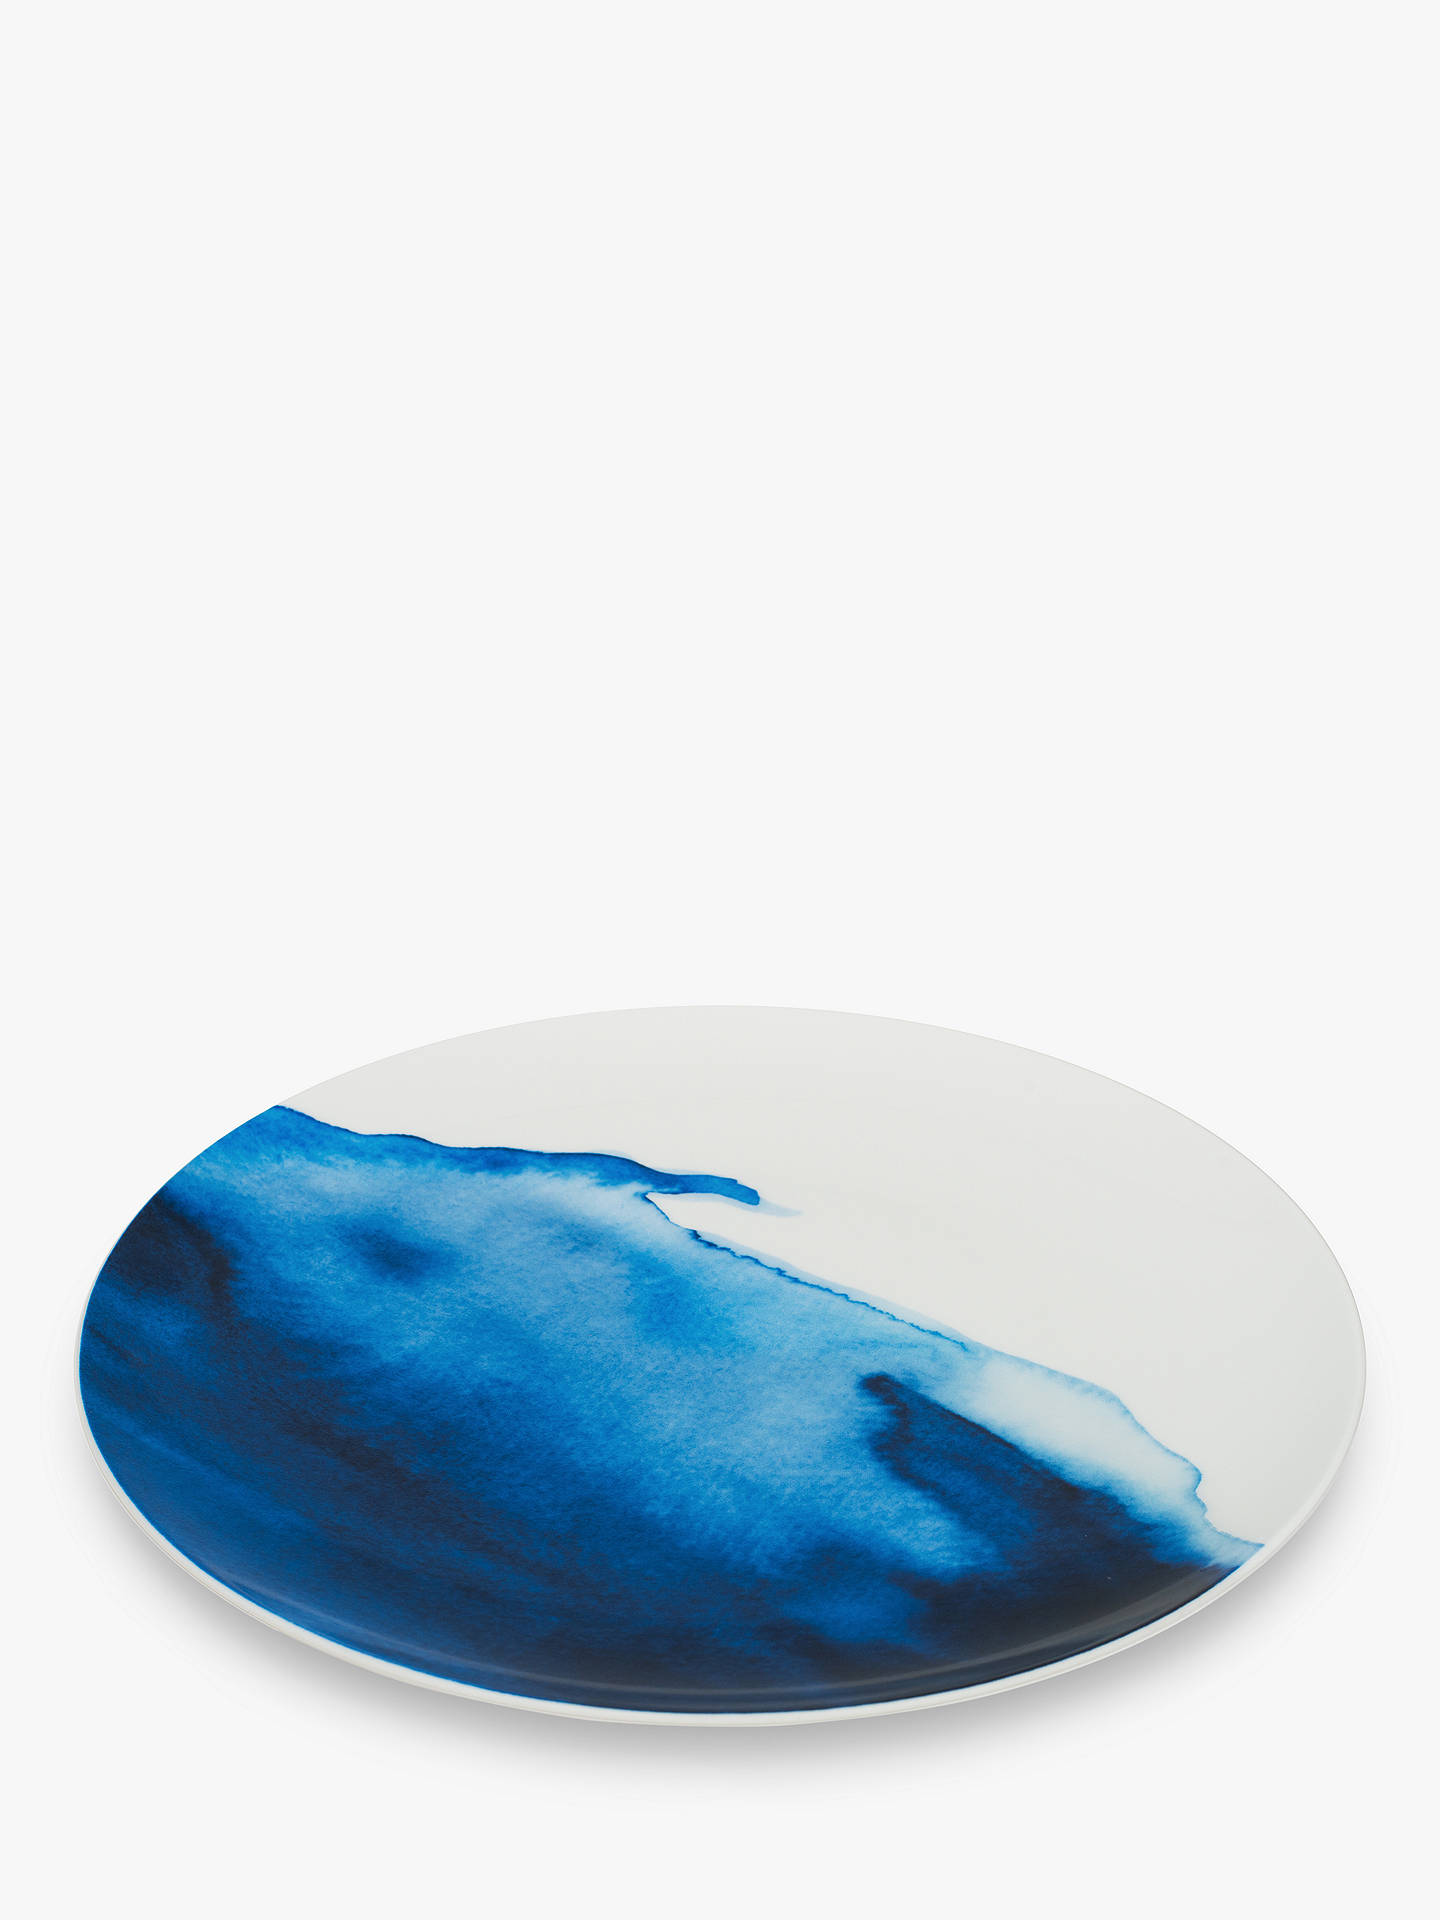 Buy Rick Stein Coves of Cornwall Constantine Bay Dinner Plate, Blue/White, Dia.28cm Online at johnlewis.com